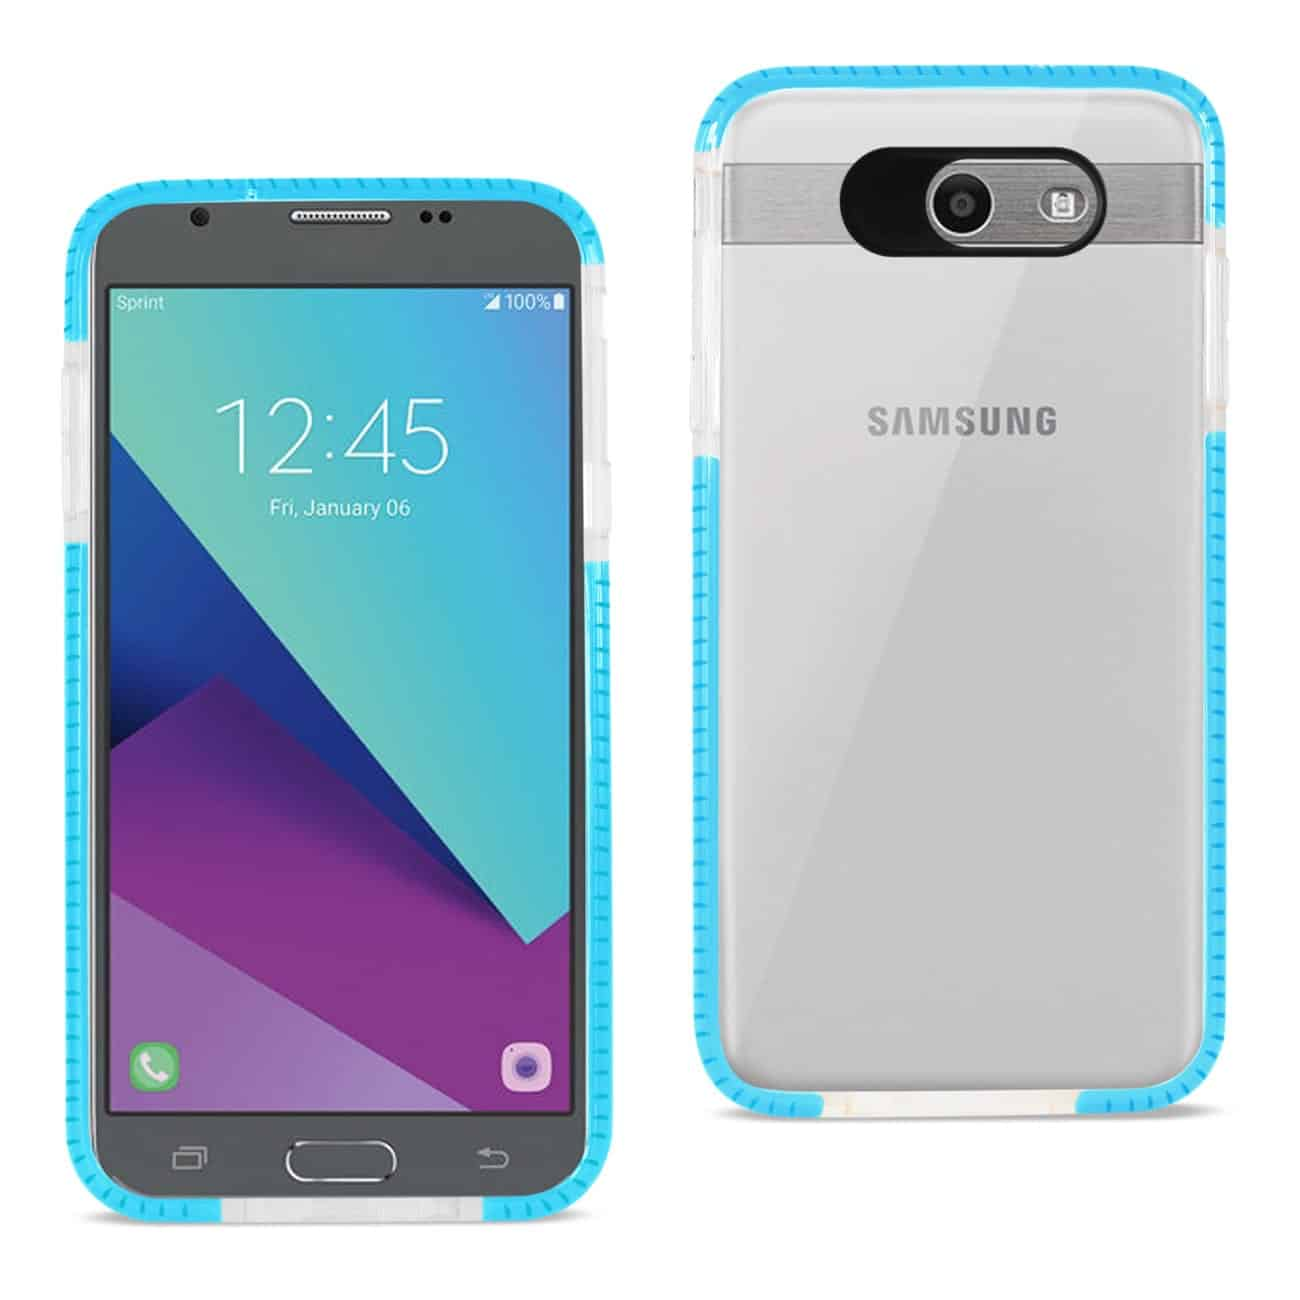 SAMSUNG GALAXY J7 V (2017) SOFT TRANSPARENT TPU CASE IN CLEAR BLUE